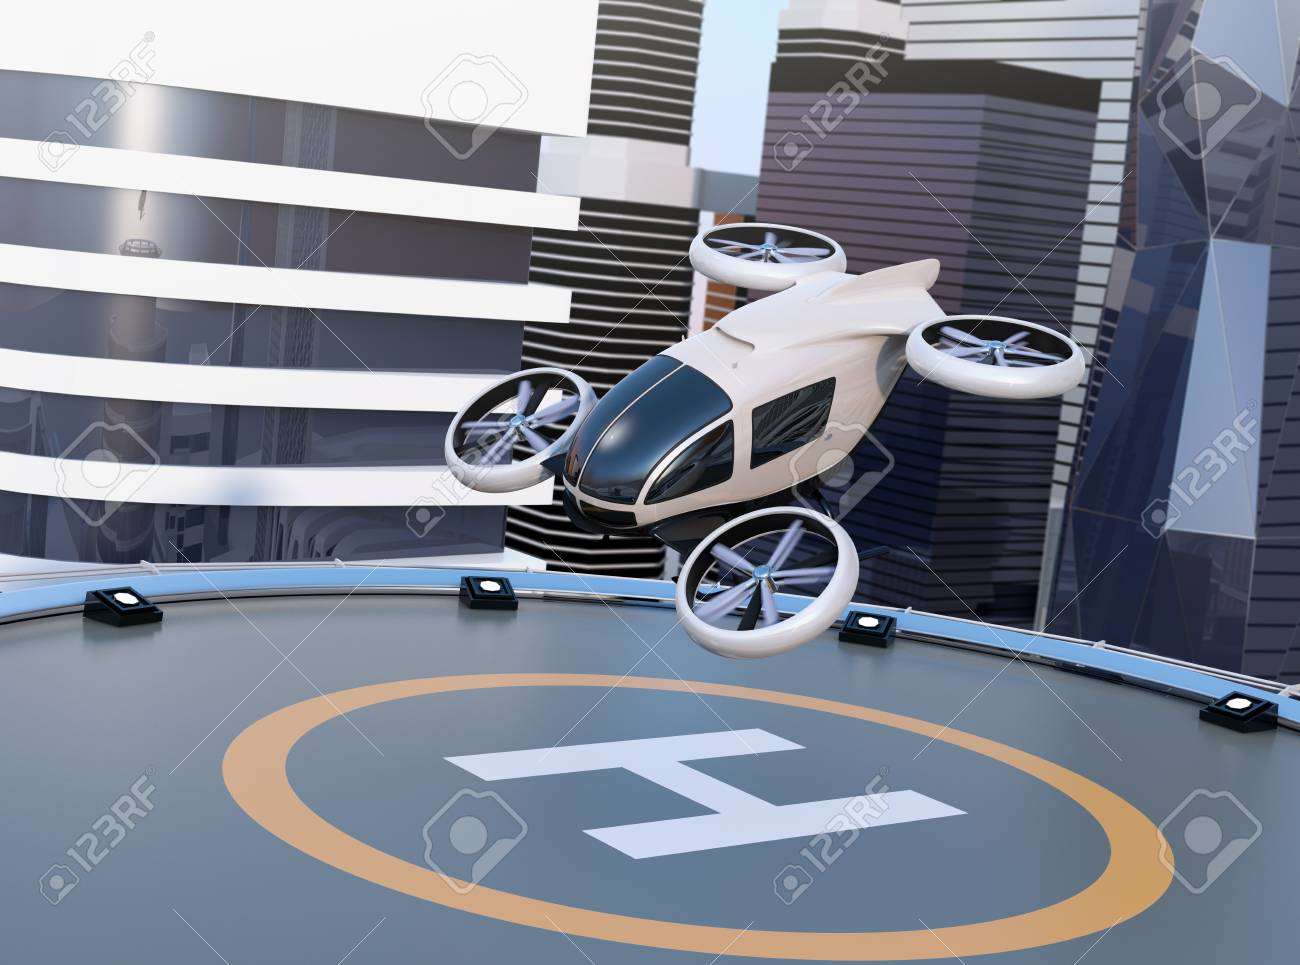 White self-driving passenger drone takeoff and landing on the helipad. 3D rendering image. - 99020047